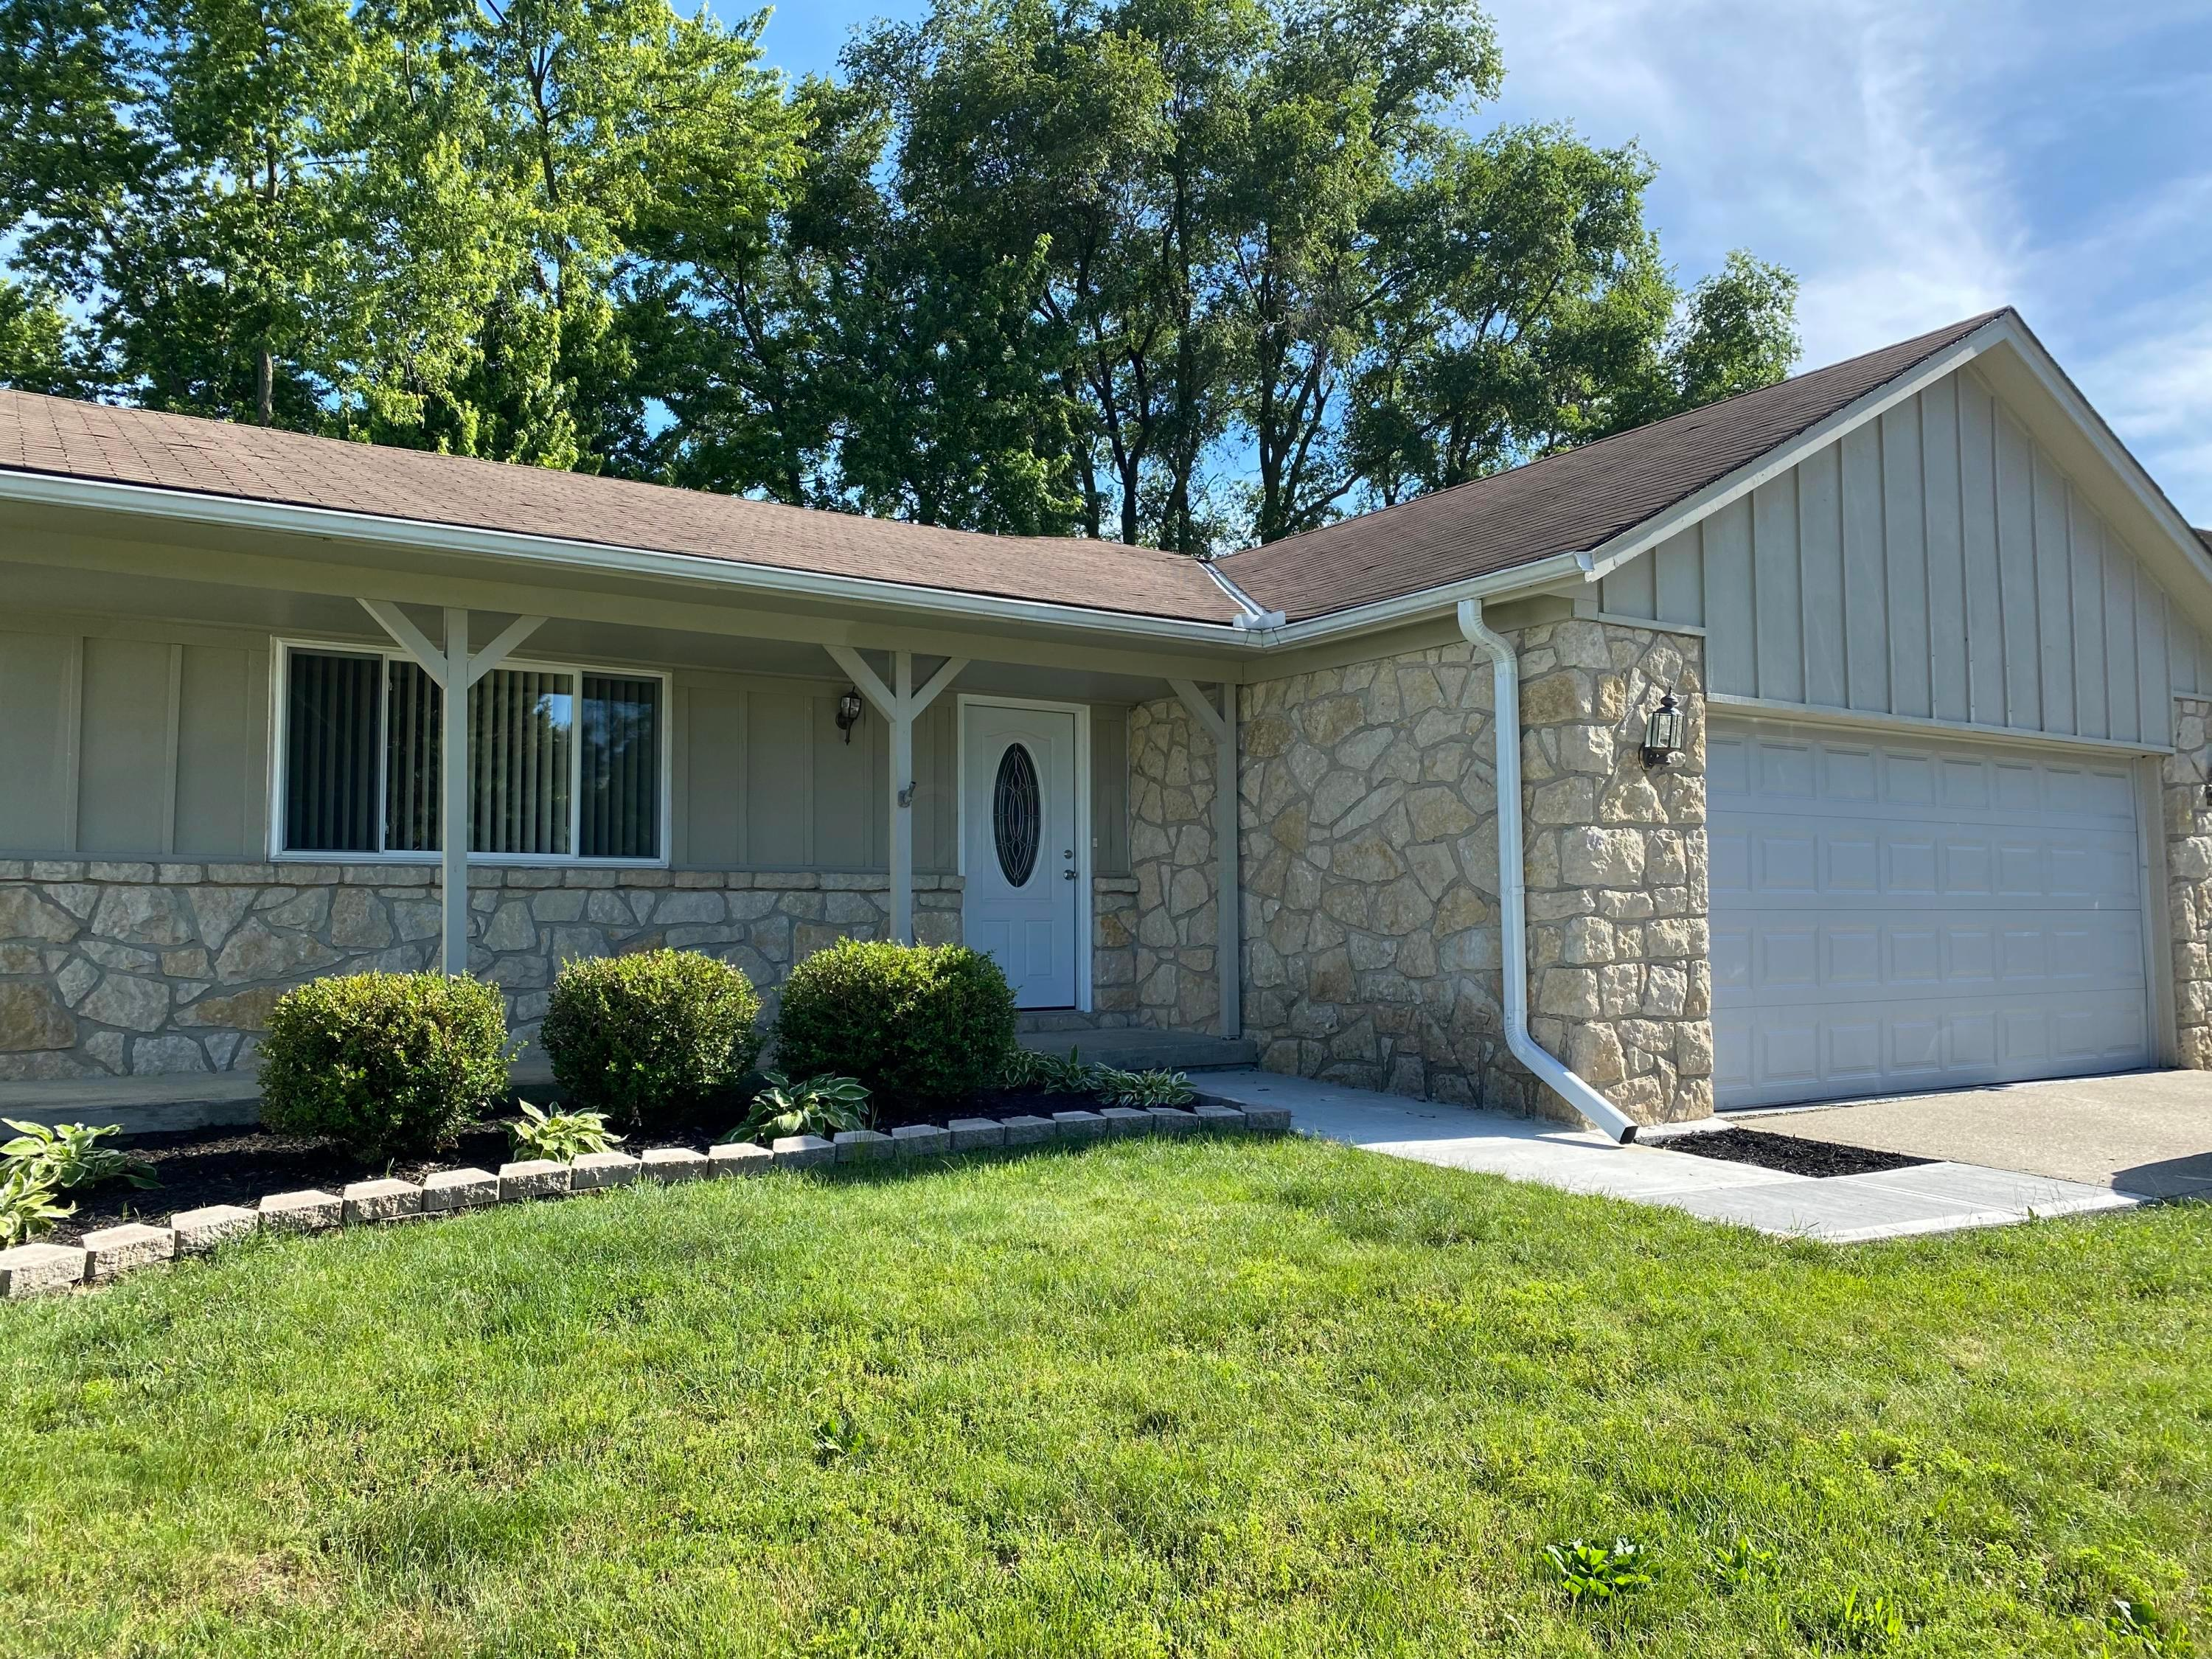 2009 Hamrock Drive, Powell, Ohio 43065, 3 Bedrooms Bedrooms, ,2 BathroomsBathrooms,Residential,For Sale,Hamrock,219040457